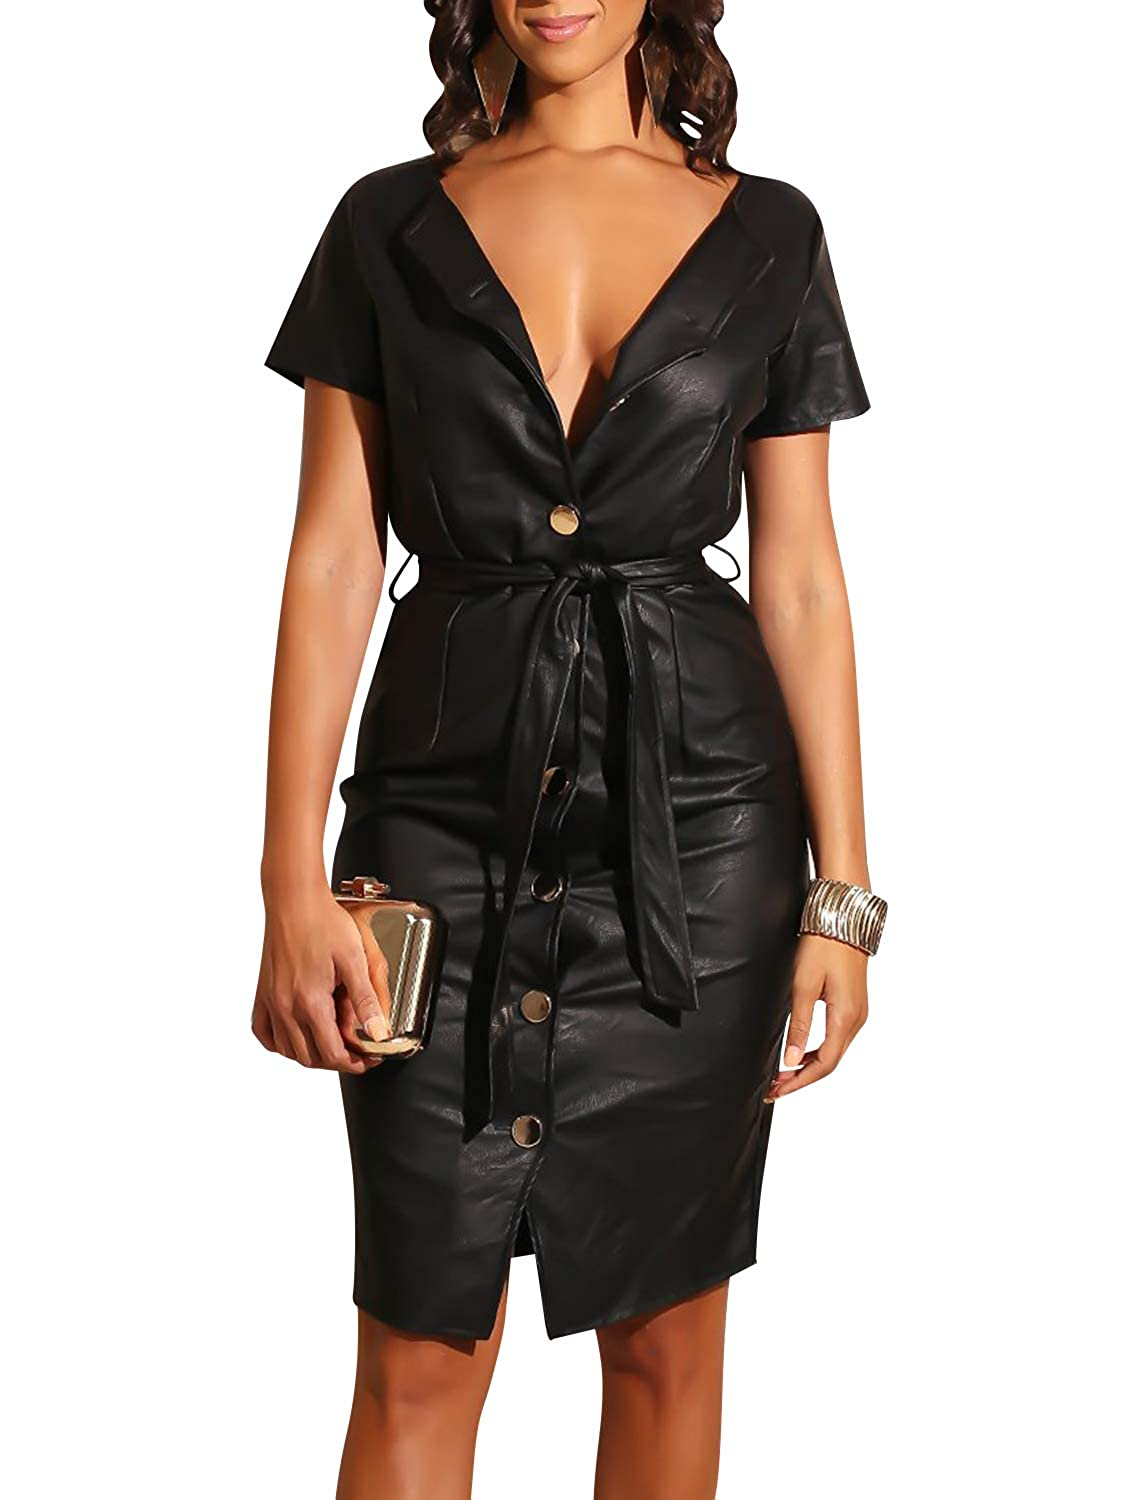 529343a8 Glamaker Women's Faux Leather Button Down Party Dress Short Sleeve Bodycon  V Neck Dress with Belt at Amazon Women's Clothing store: